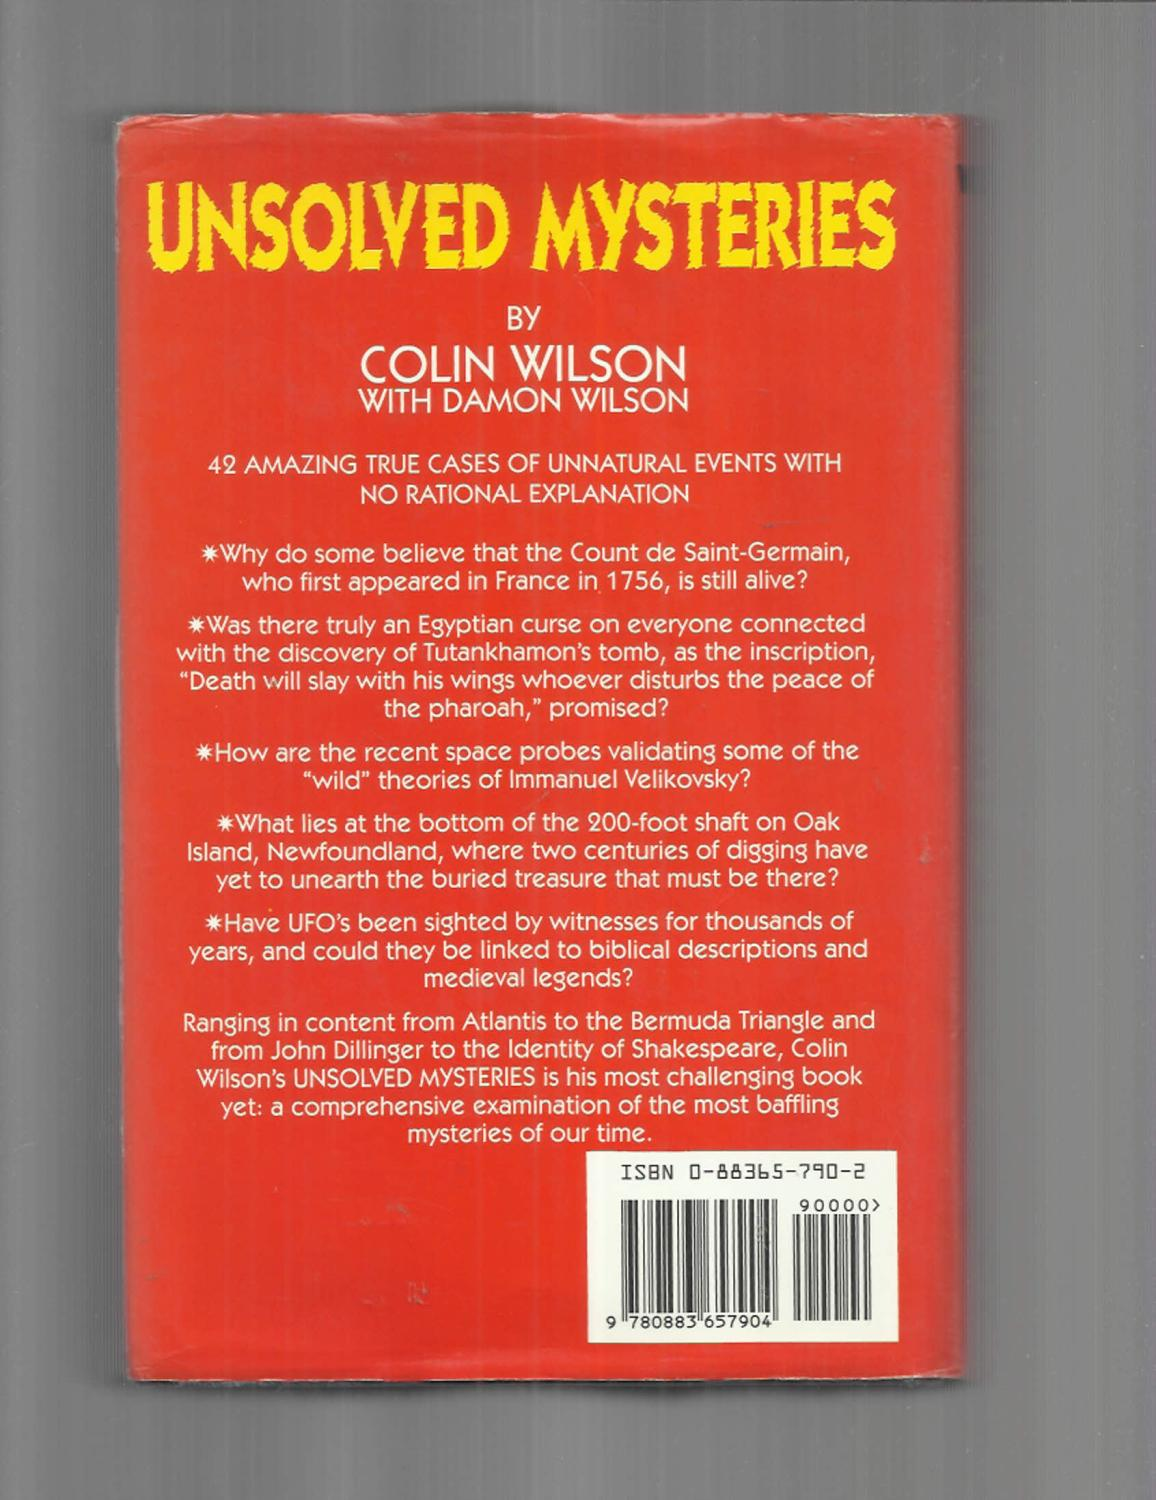 UNSOLVED MYSTERIES: 42 Amazing True Cases Of